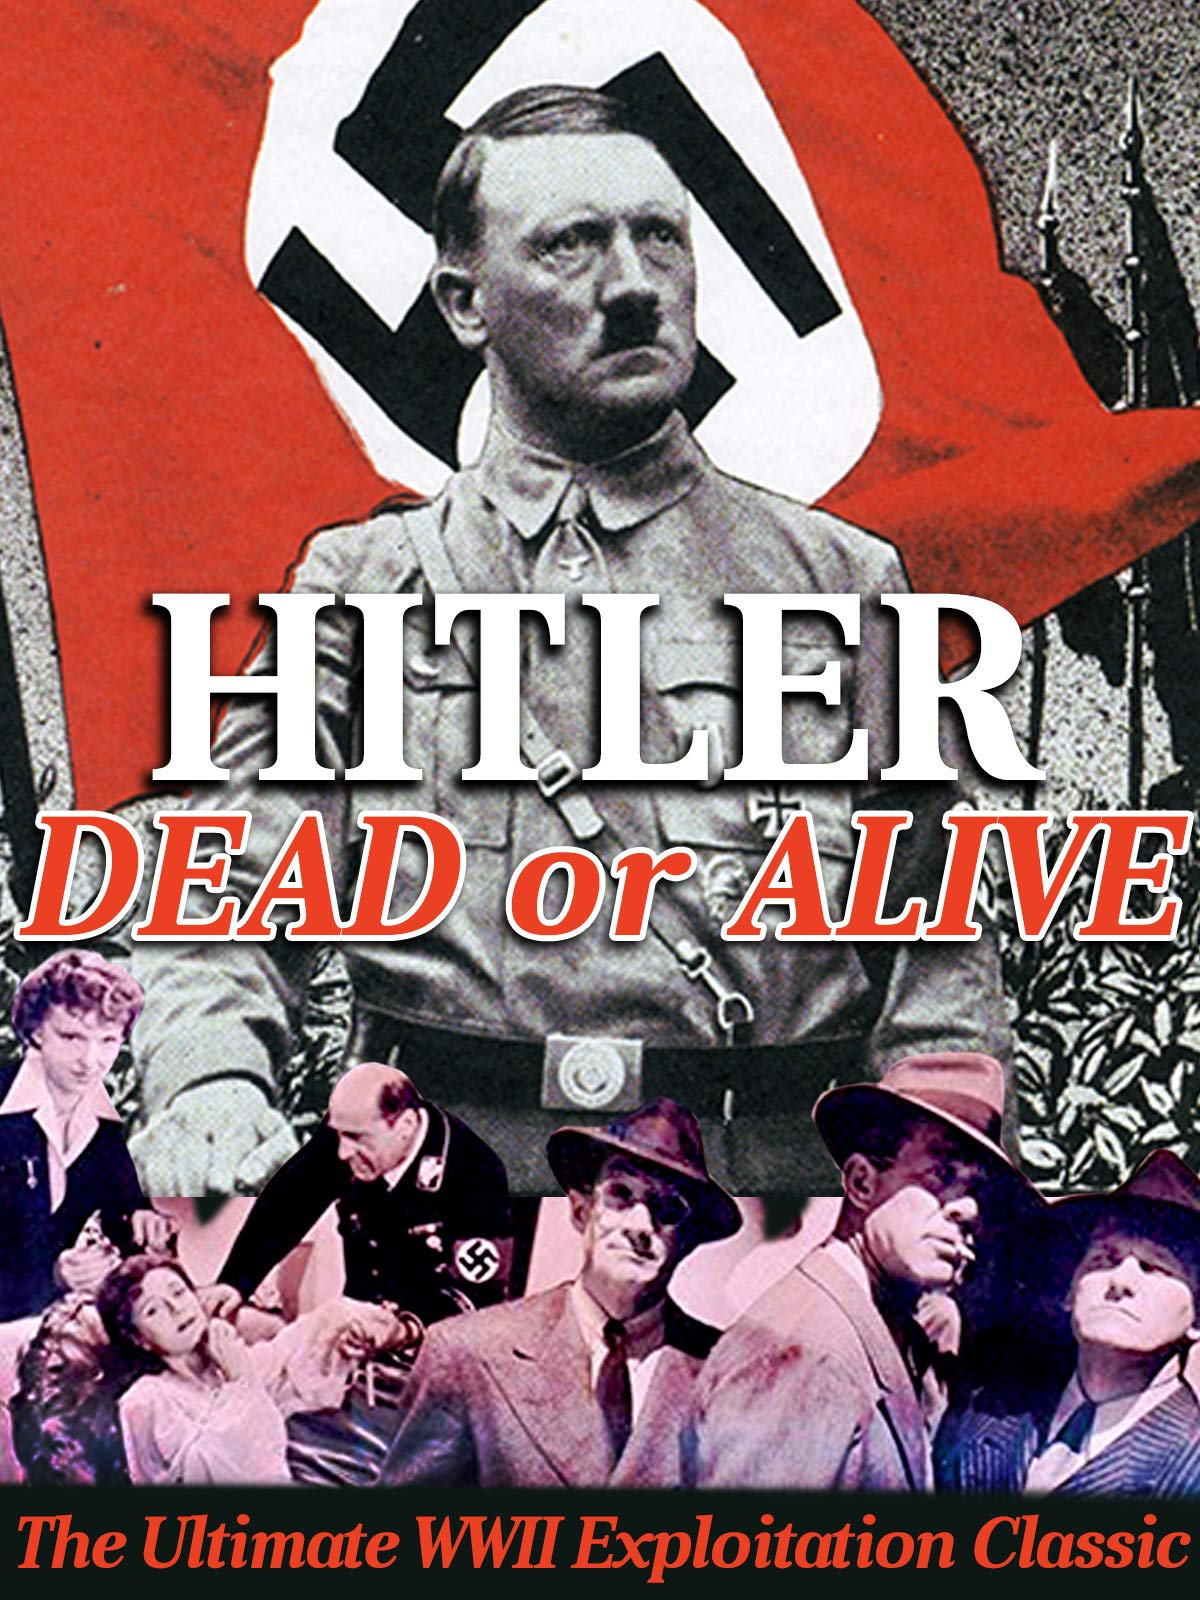 Hitler, Dead Or Alive - The Ultimate WWII Exploitation Classic